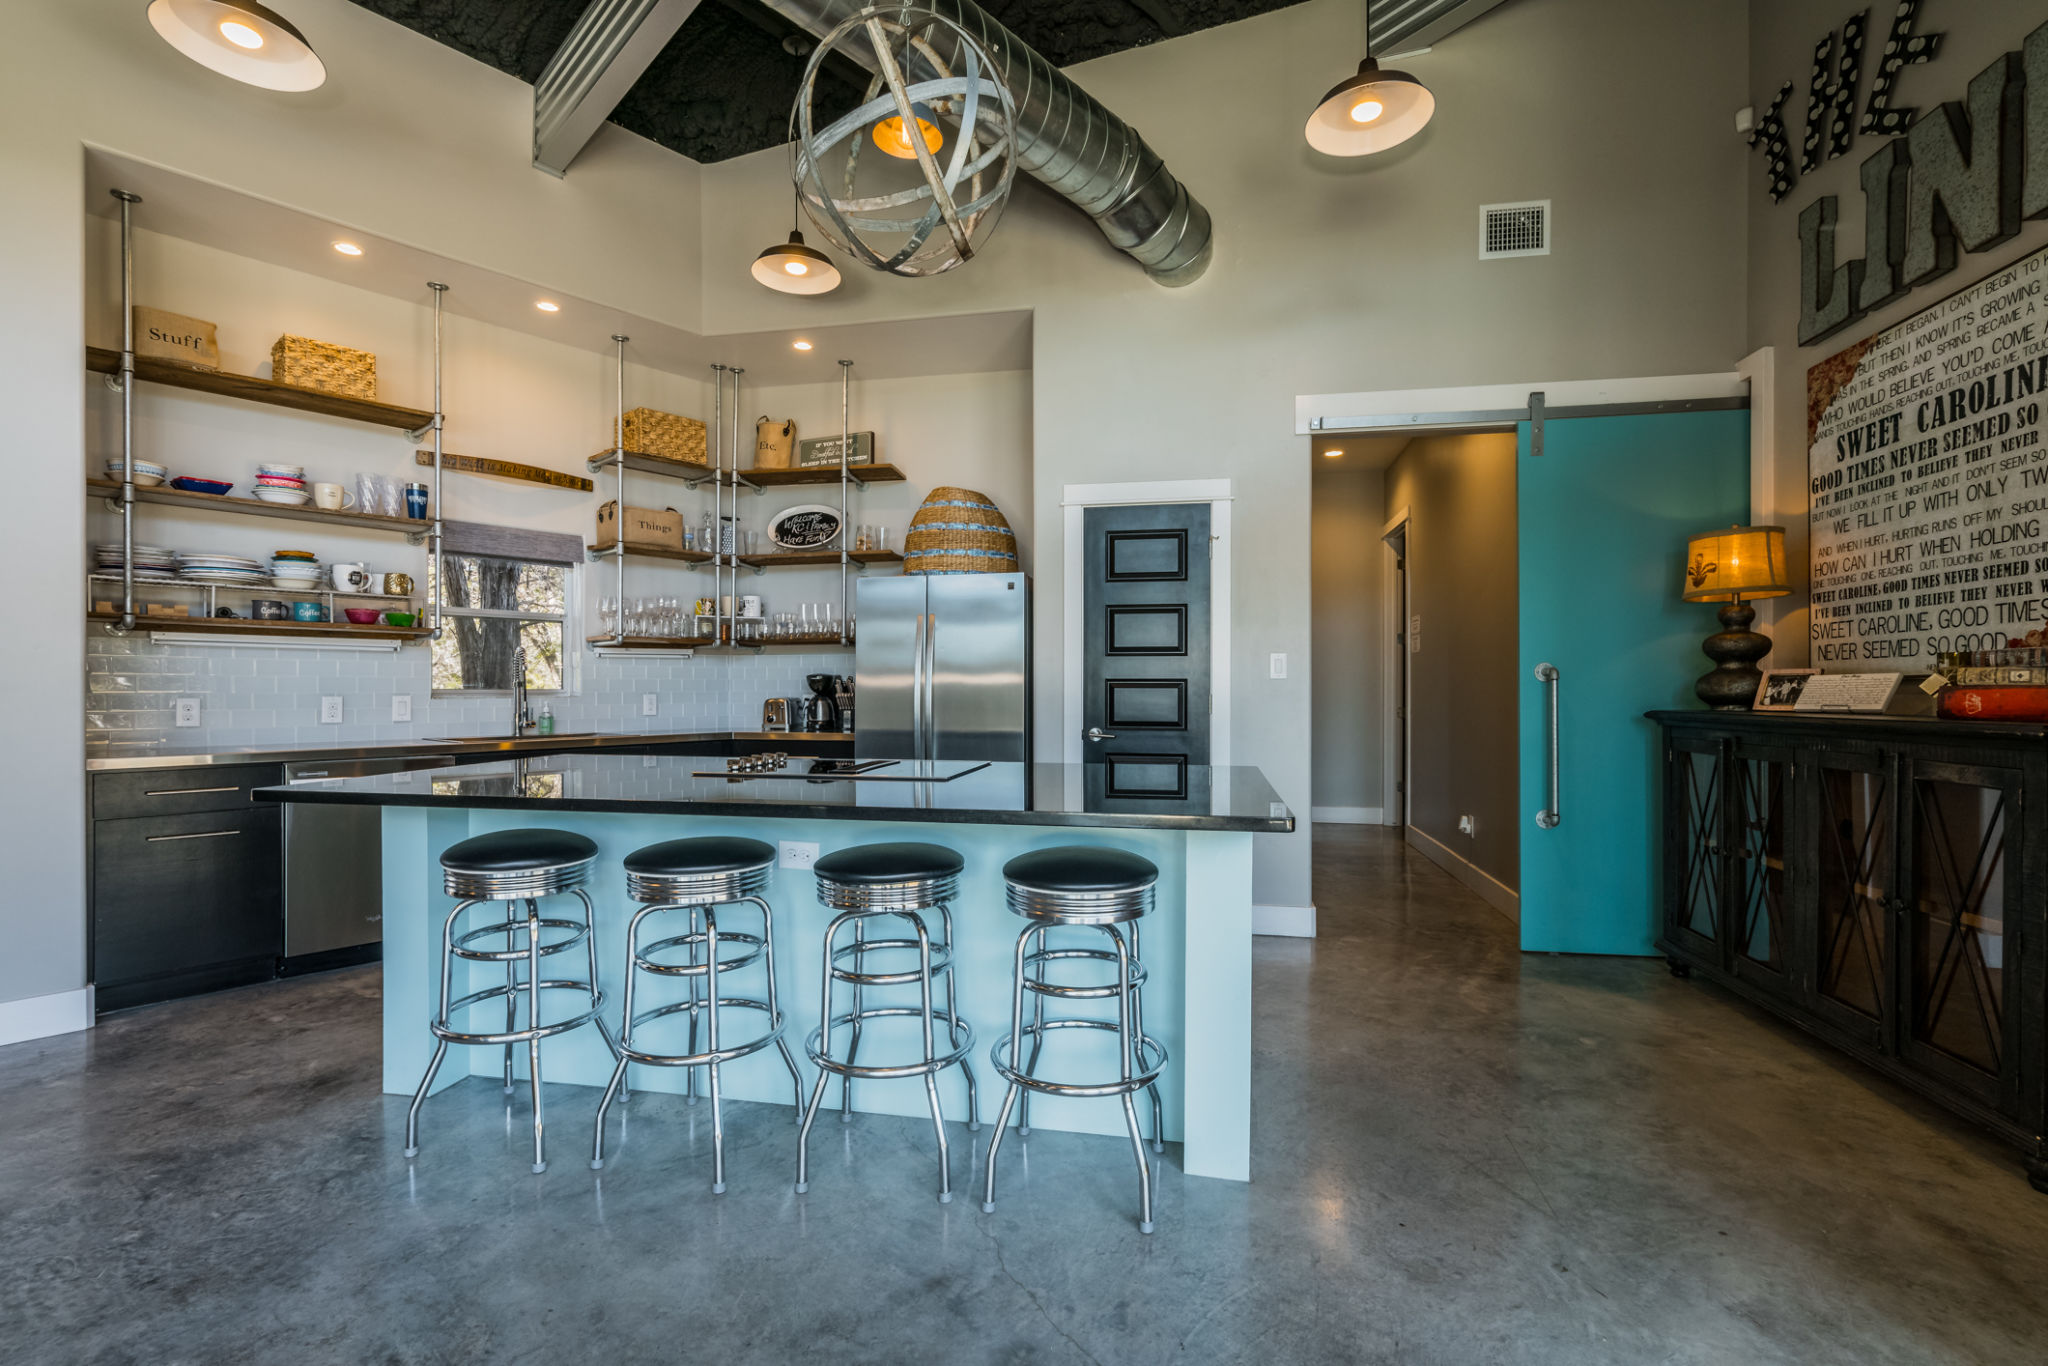 Texas Hill Country Eclectic, Modern, & Chic Boutique Hotel & Venue ...